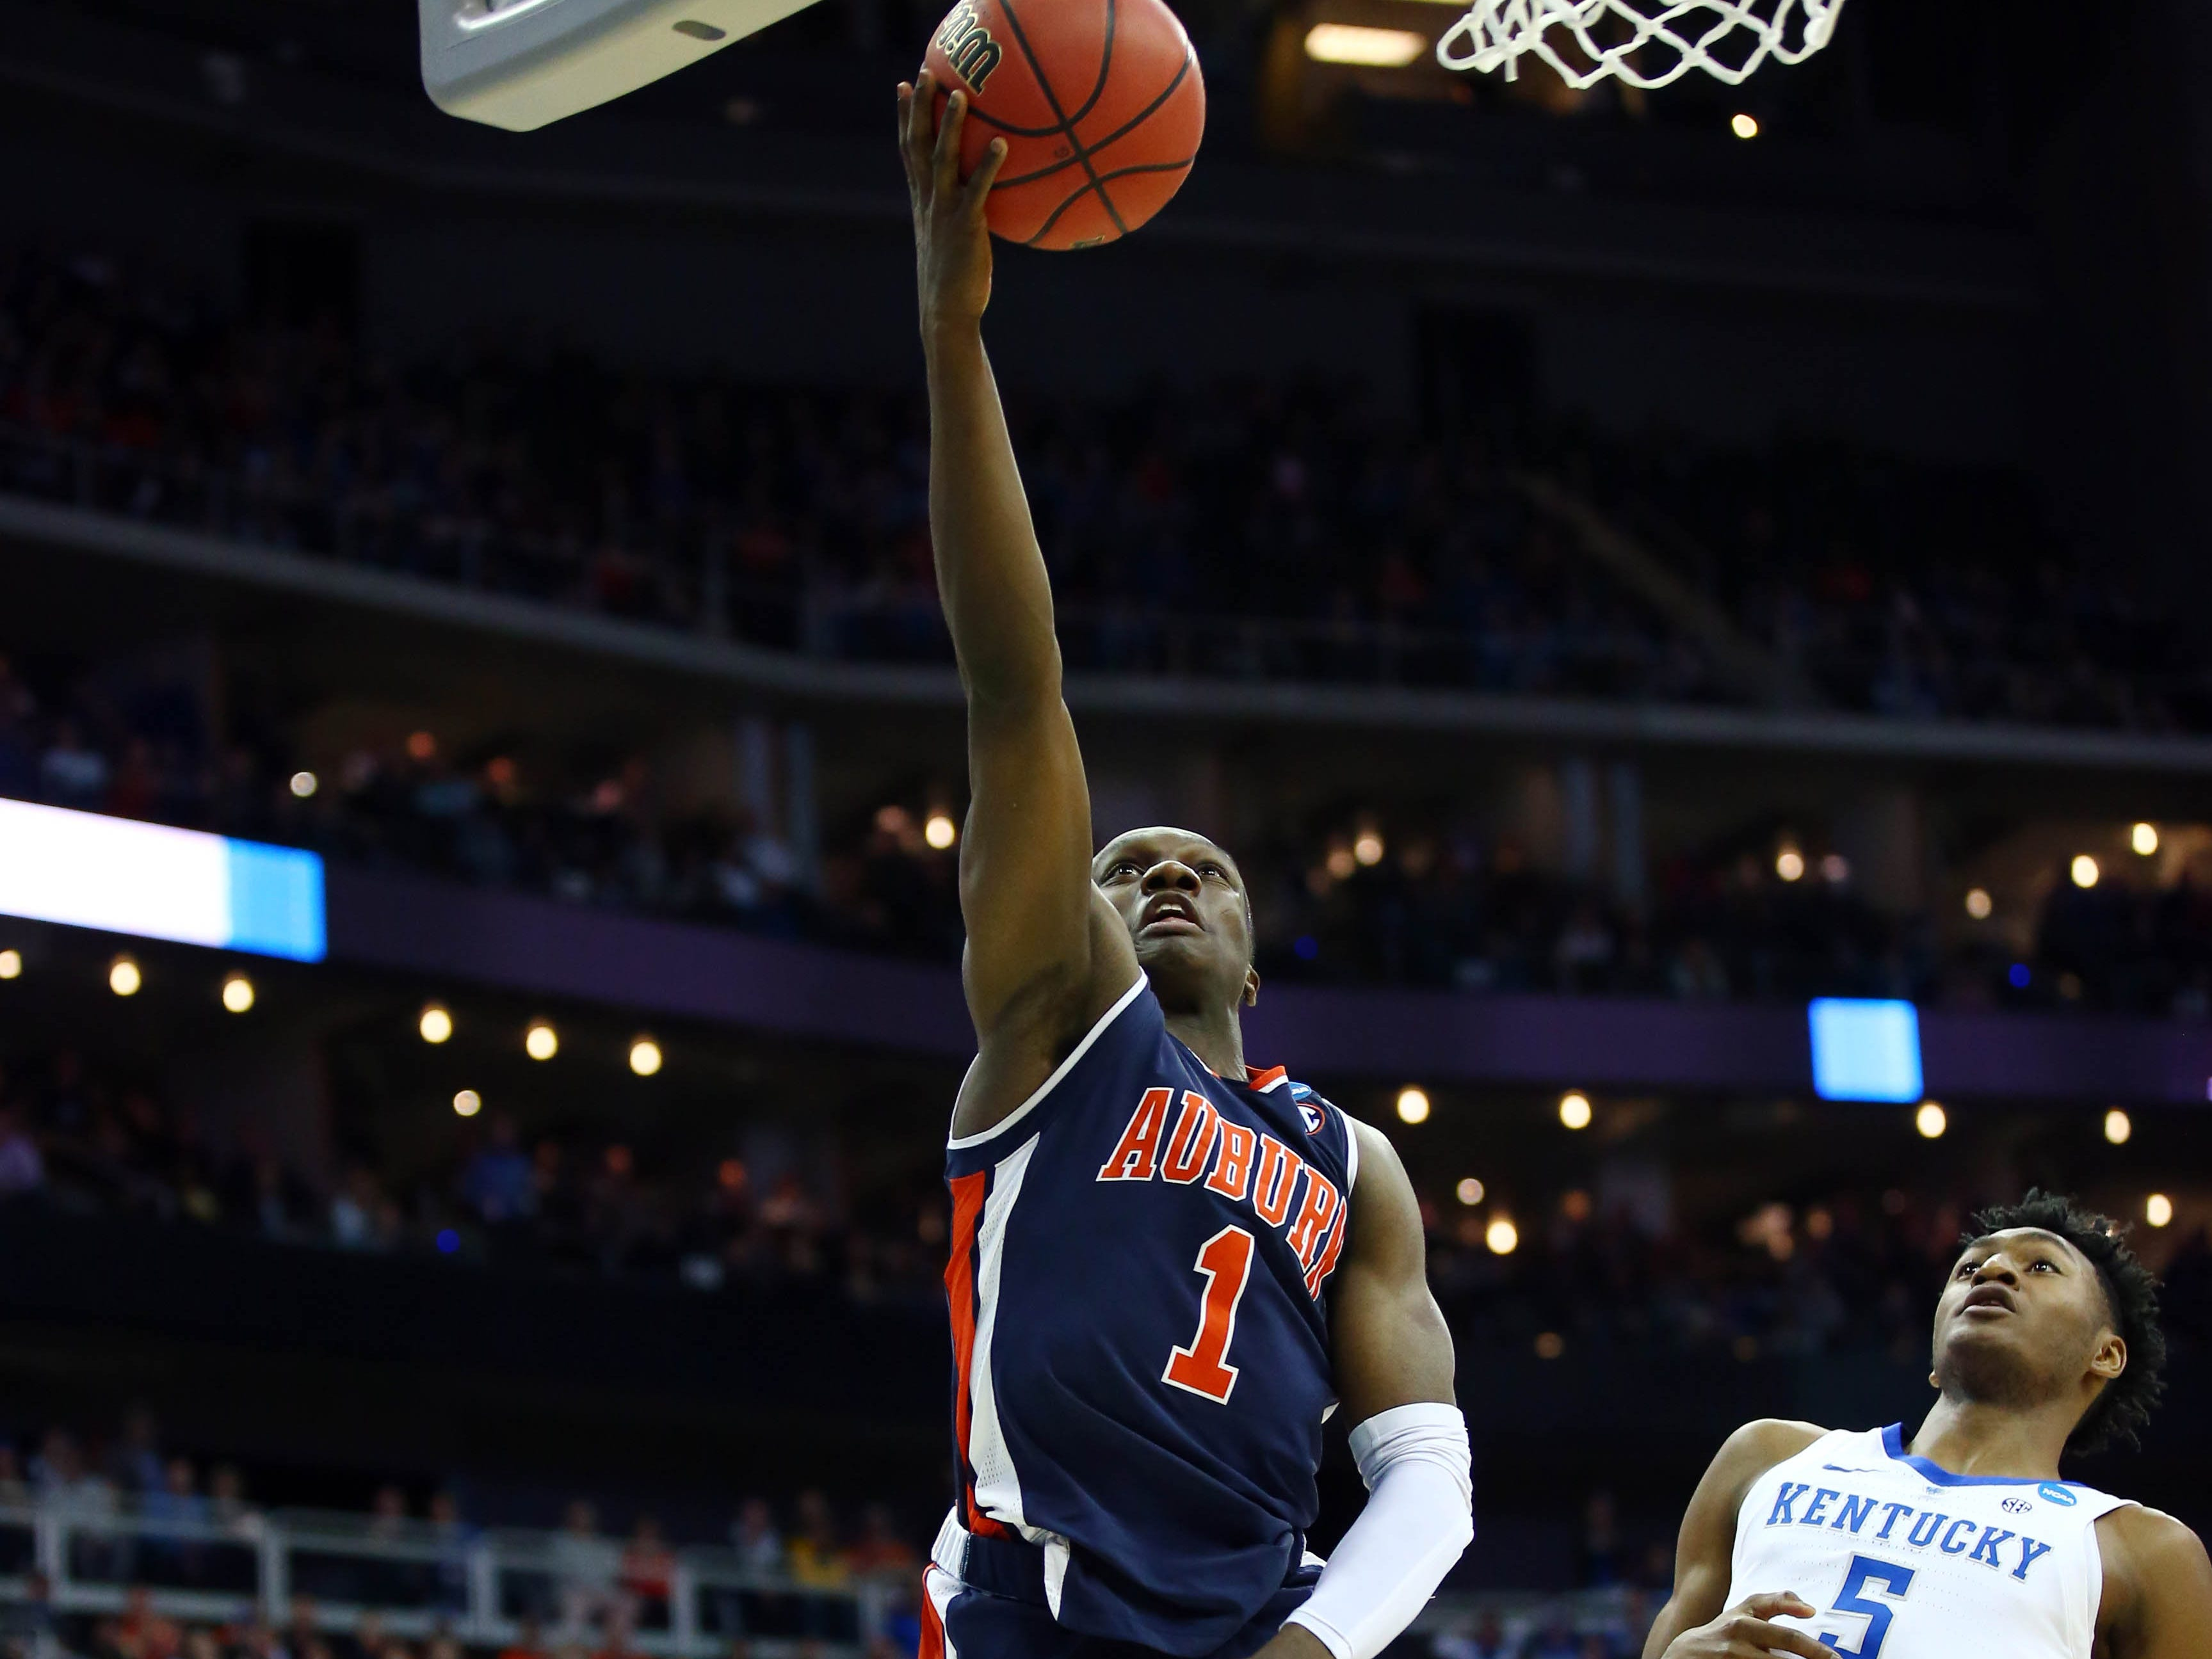 Mar 31, 2019; Kansas City, MO, United States; Auburn Tigers guard Jared Harper (1) shoots against Kentucky Wildcats guard Immanuel Quickley (5) during the first half in the championship game of the midwest regional of the 2019 NCAA Tournament at Sprint Center. Mandatory Credit: Jay Biggerstaff-USA TODAY Sports